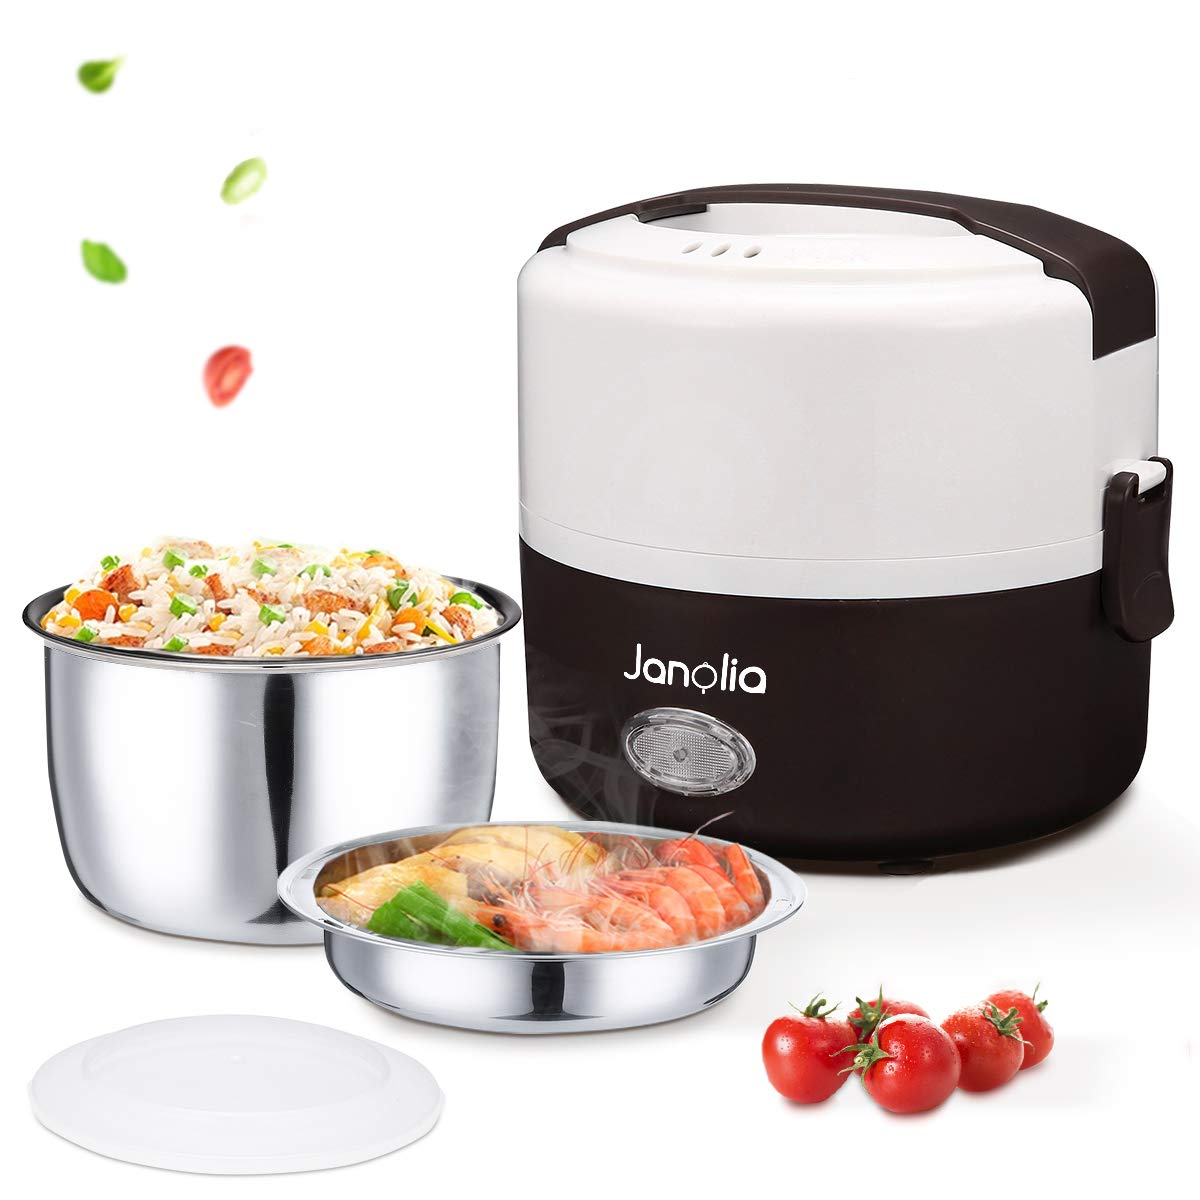 Janolia Electric Food Steamer, Portable Lunch Box Steamer with Stainless Steel Bowls, Measuring Cup by Janolia (Image #2)